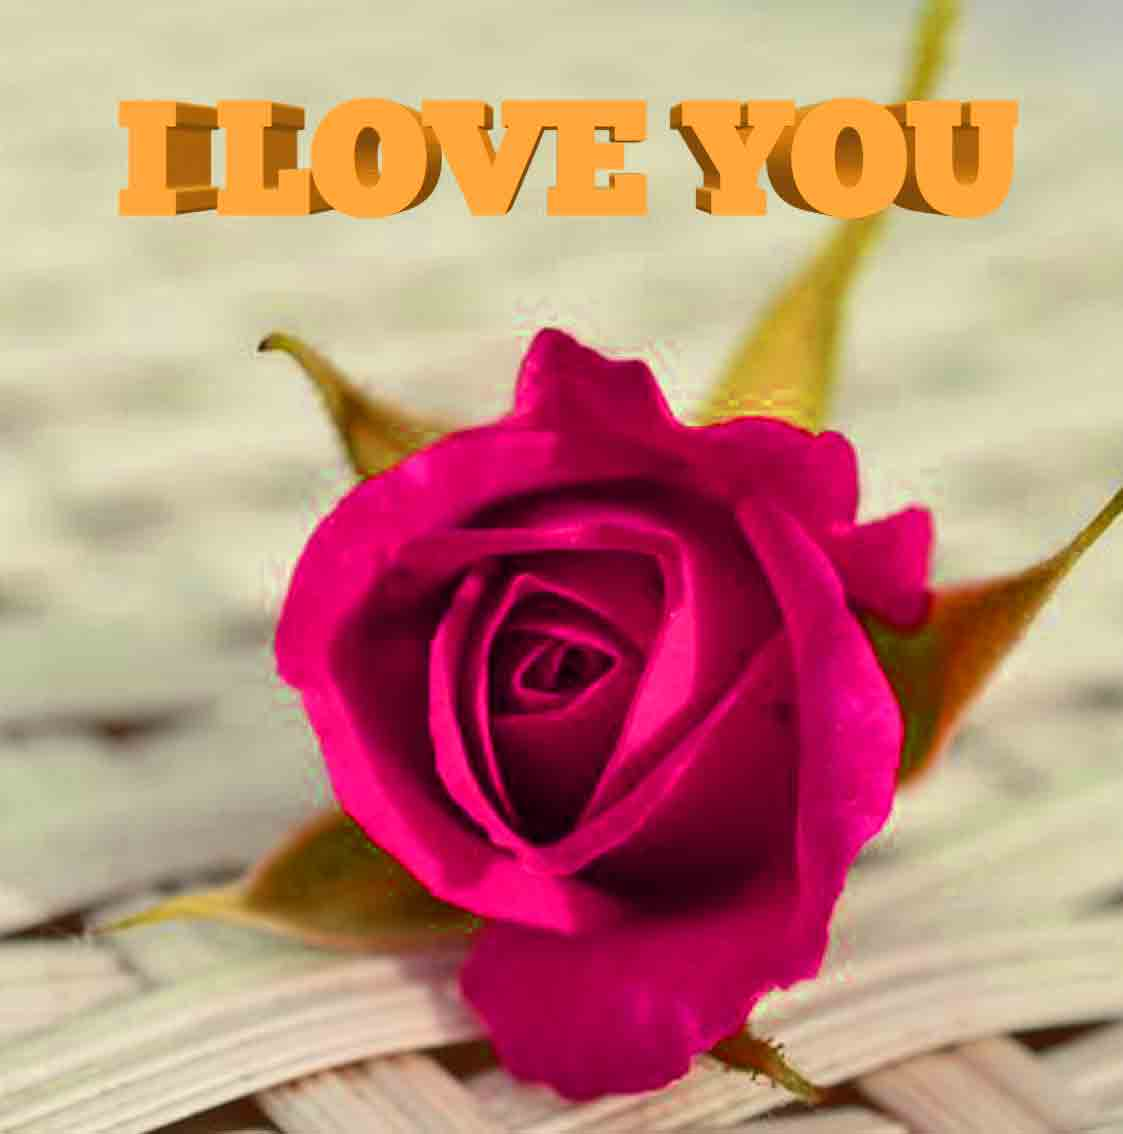 I Love You Whatsapp Dp Images wallpaper pictures pics